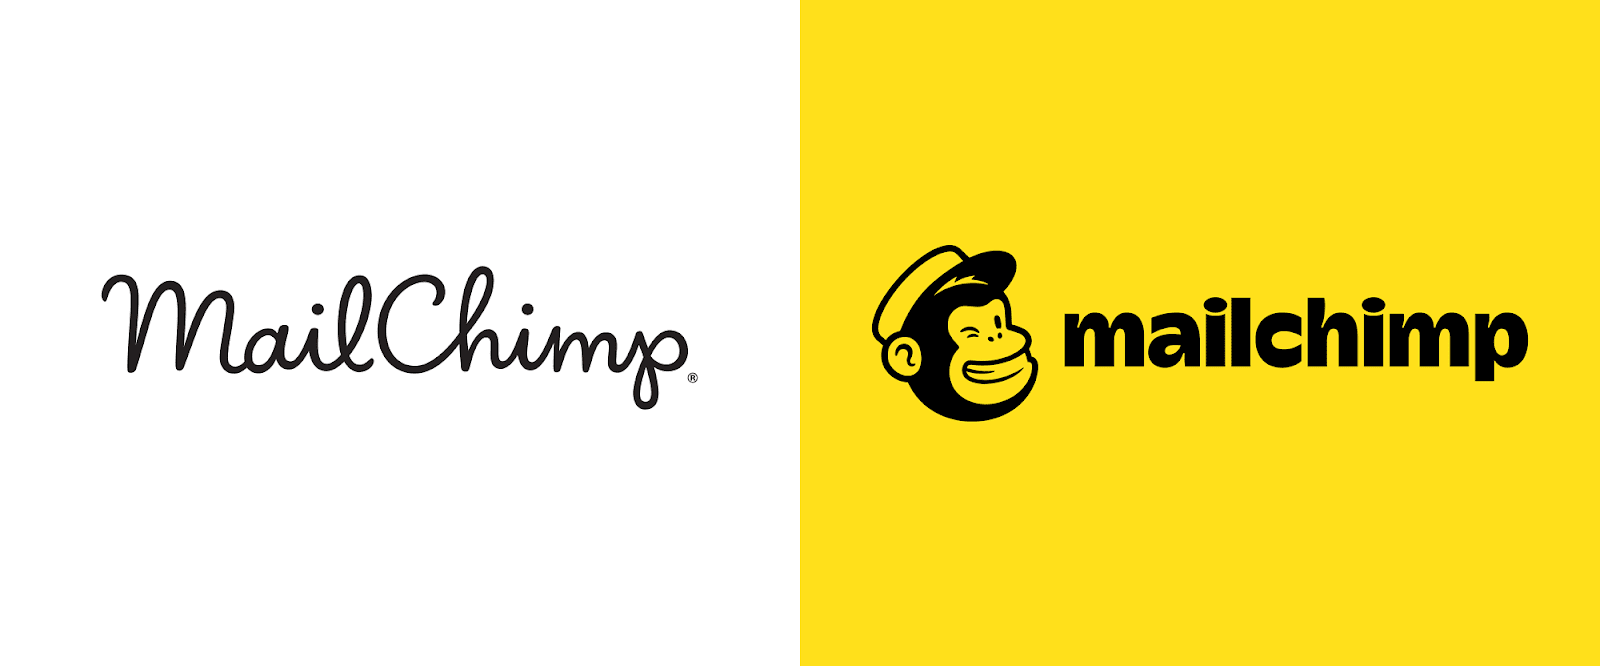 MailChimp in cursive, camel case on the left and lowercase sans serif on the right